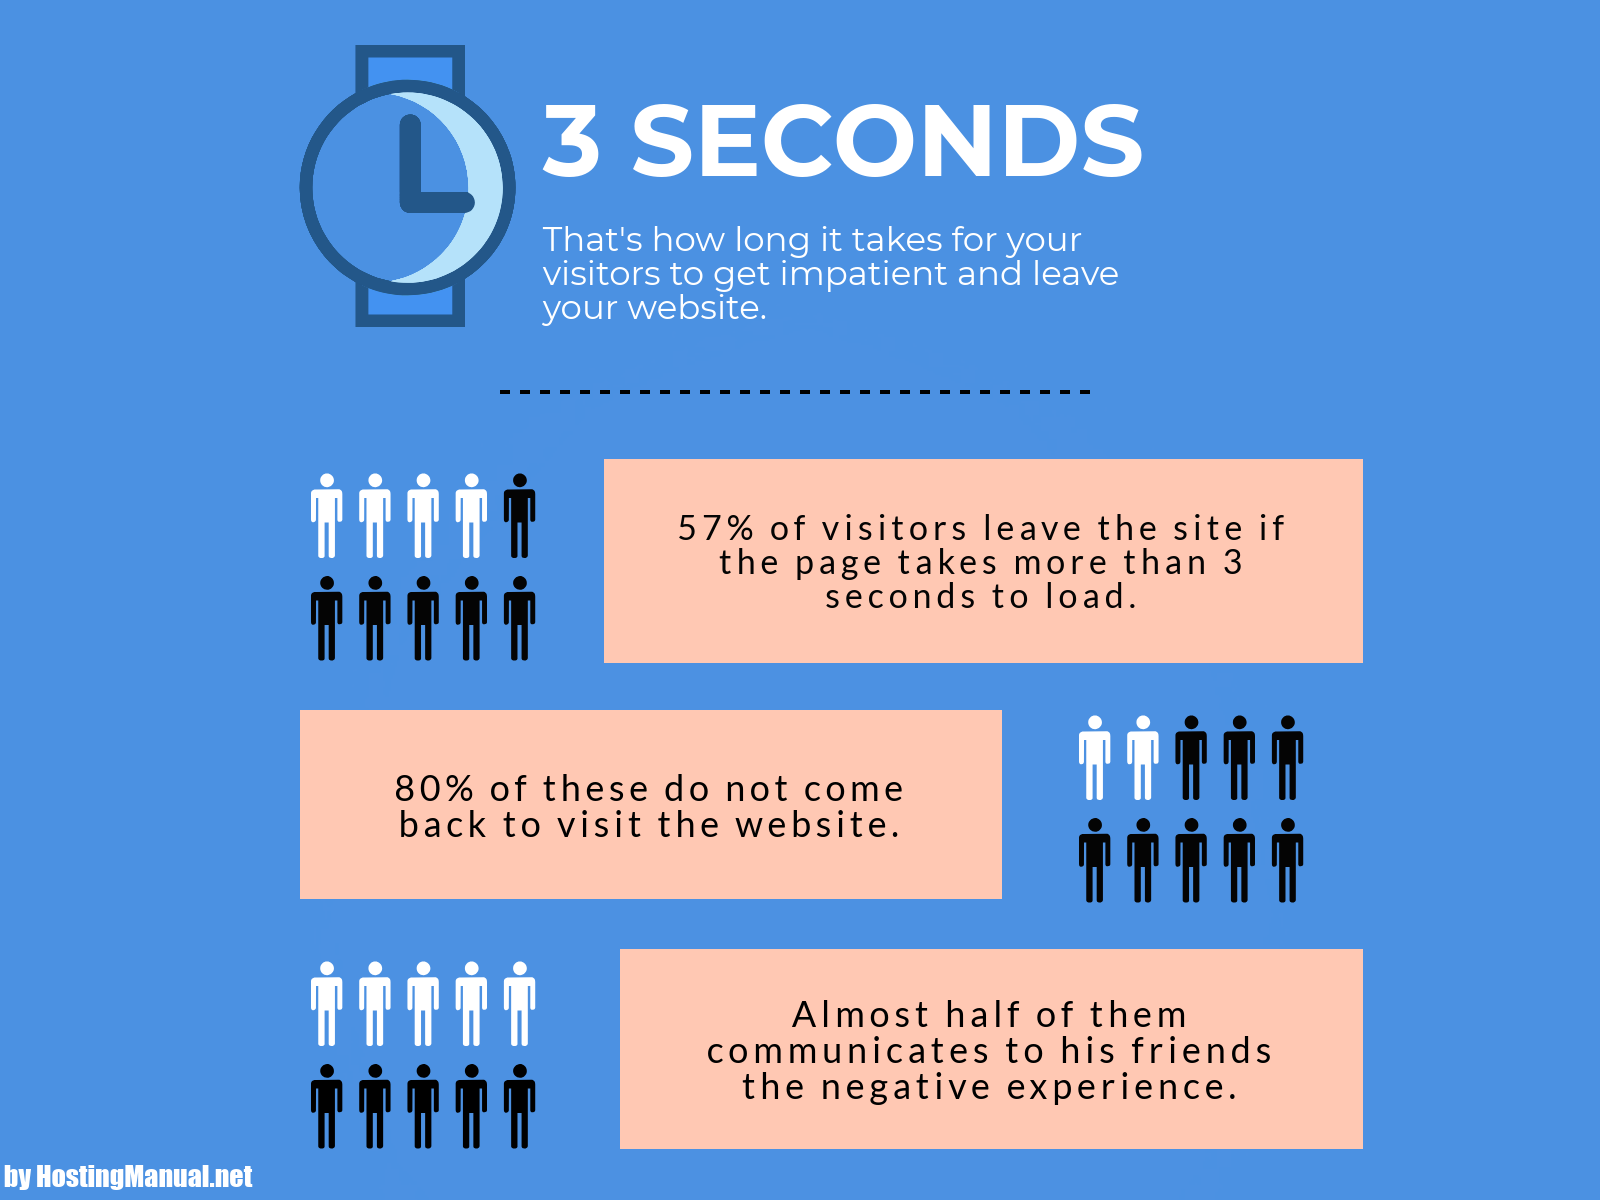 3 Seconds Load time and its impact on visitors